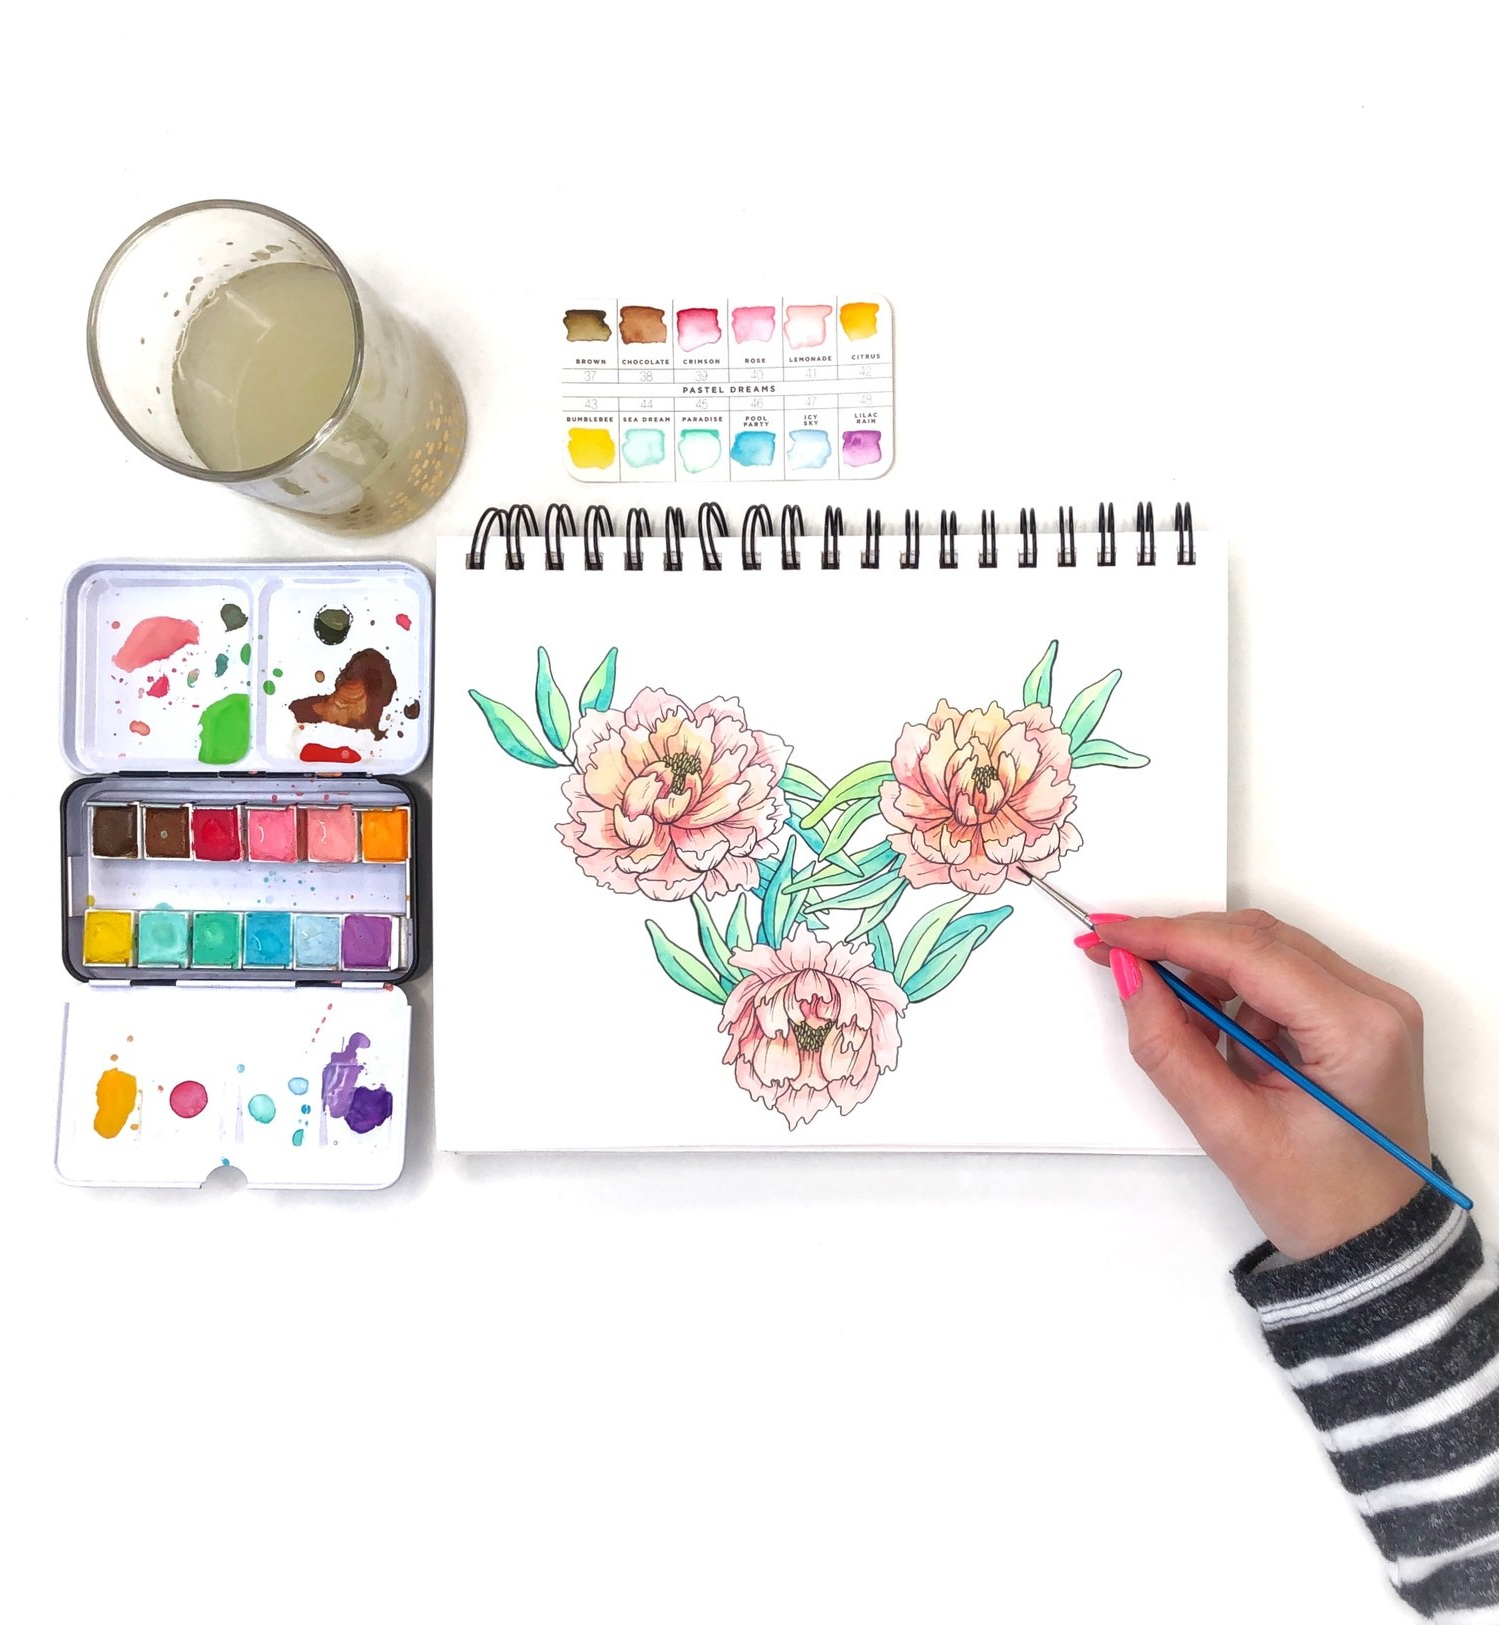 Watercolor flowers by Jessica Mack of BrownPaperBunny